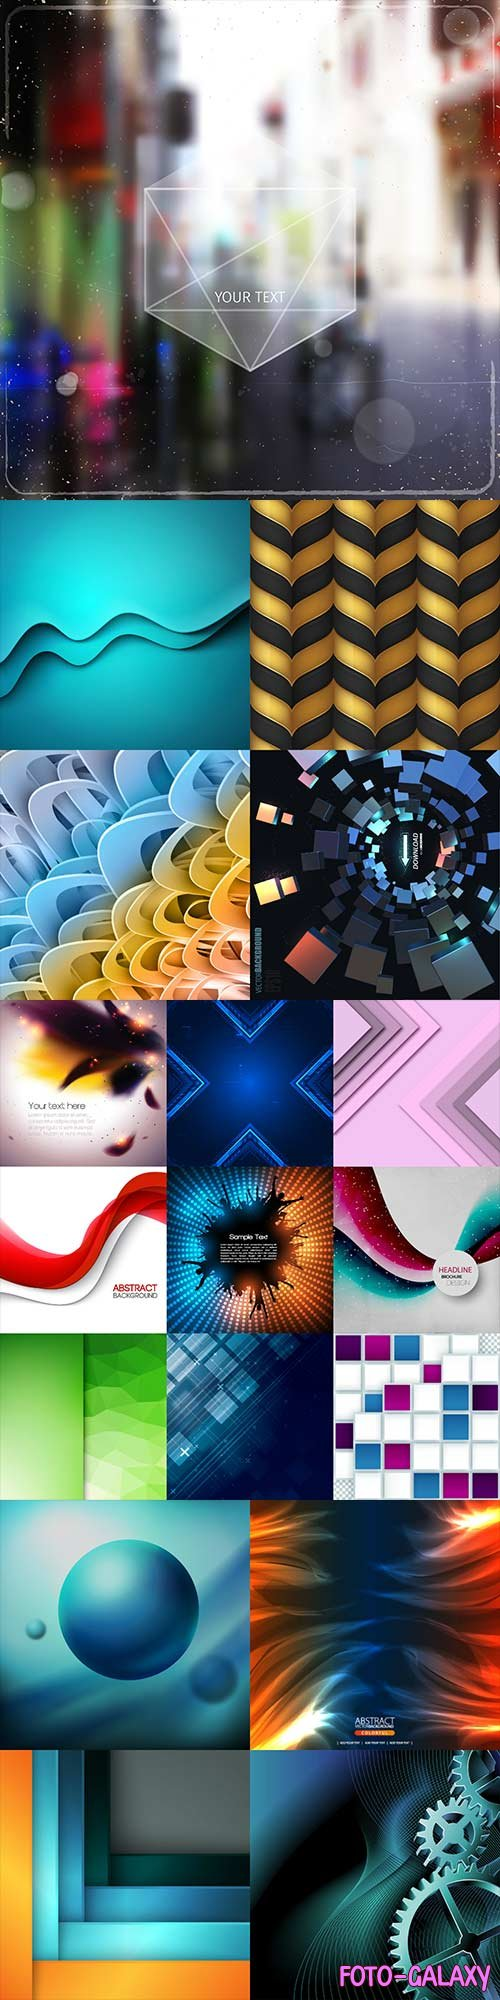 Bright colorful abstract backgrounds vector - 77